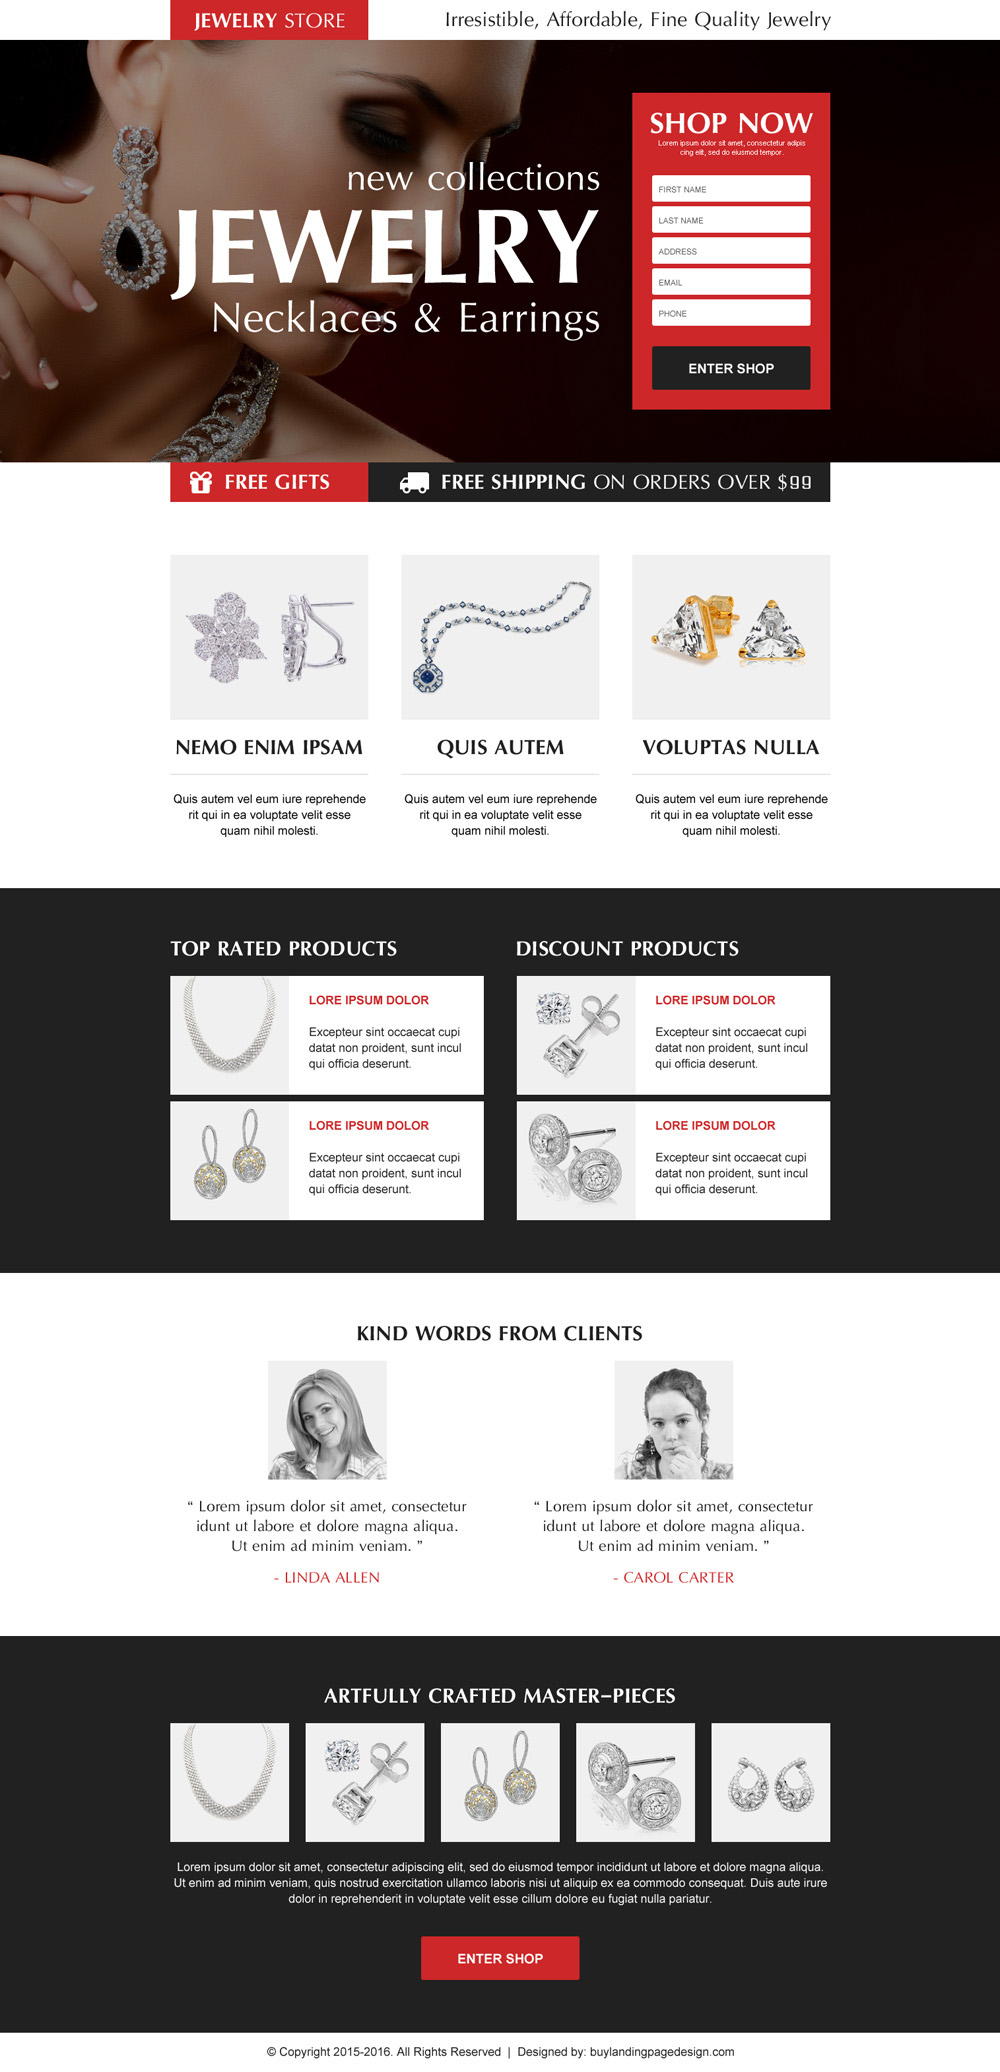 necklaces-and-earring-online-jewelry-store-landing-page-design-that-converts-003